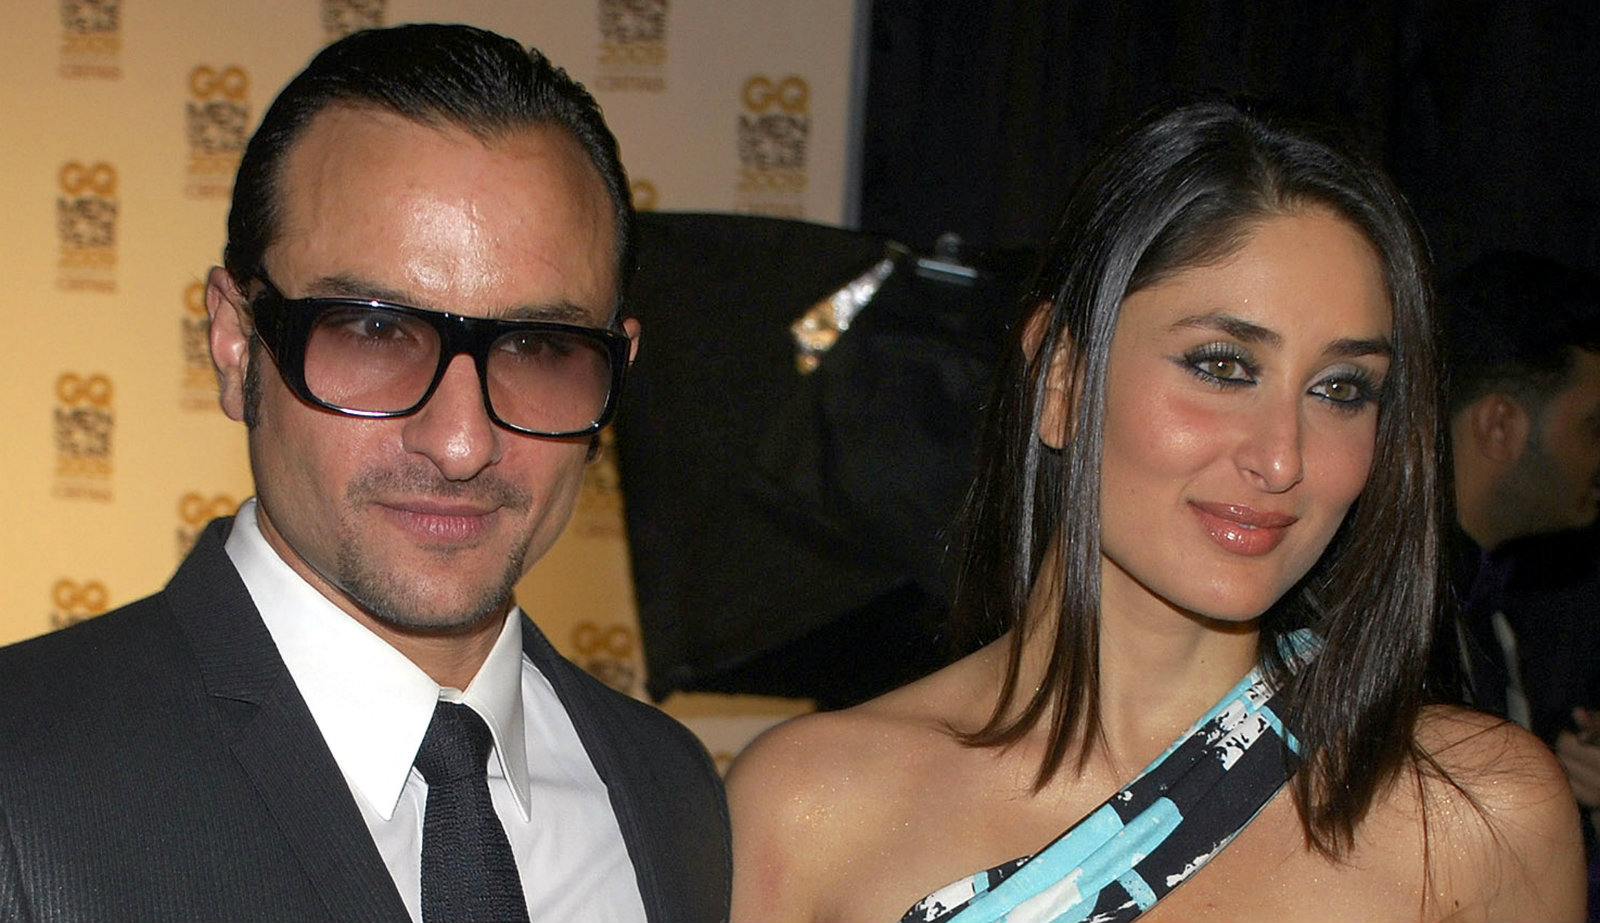 """Bollywood actors Saif Ali Khan (L) and Kareena Kapoor pose for a photograph during the """"GQ Men of the Year 2009"""" awards in Mumbai September 27, 2009. Picture taken September 27, 2009."""